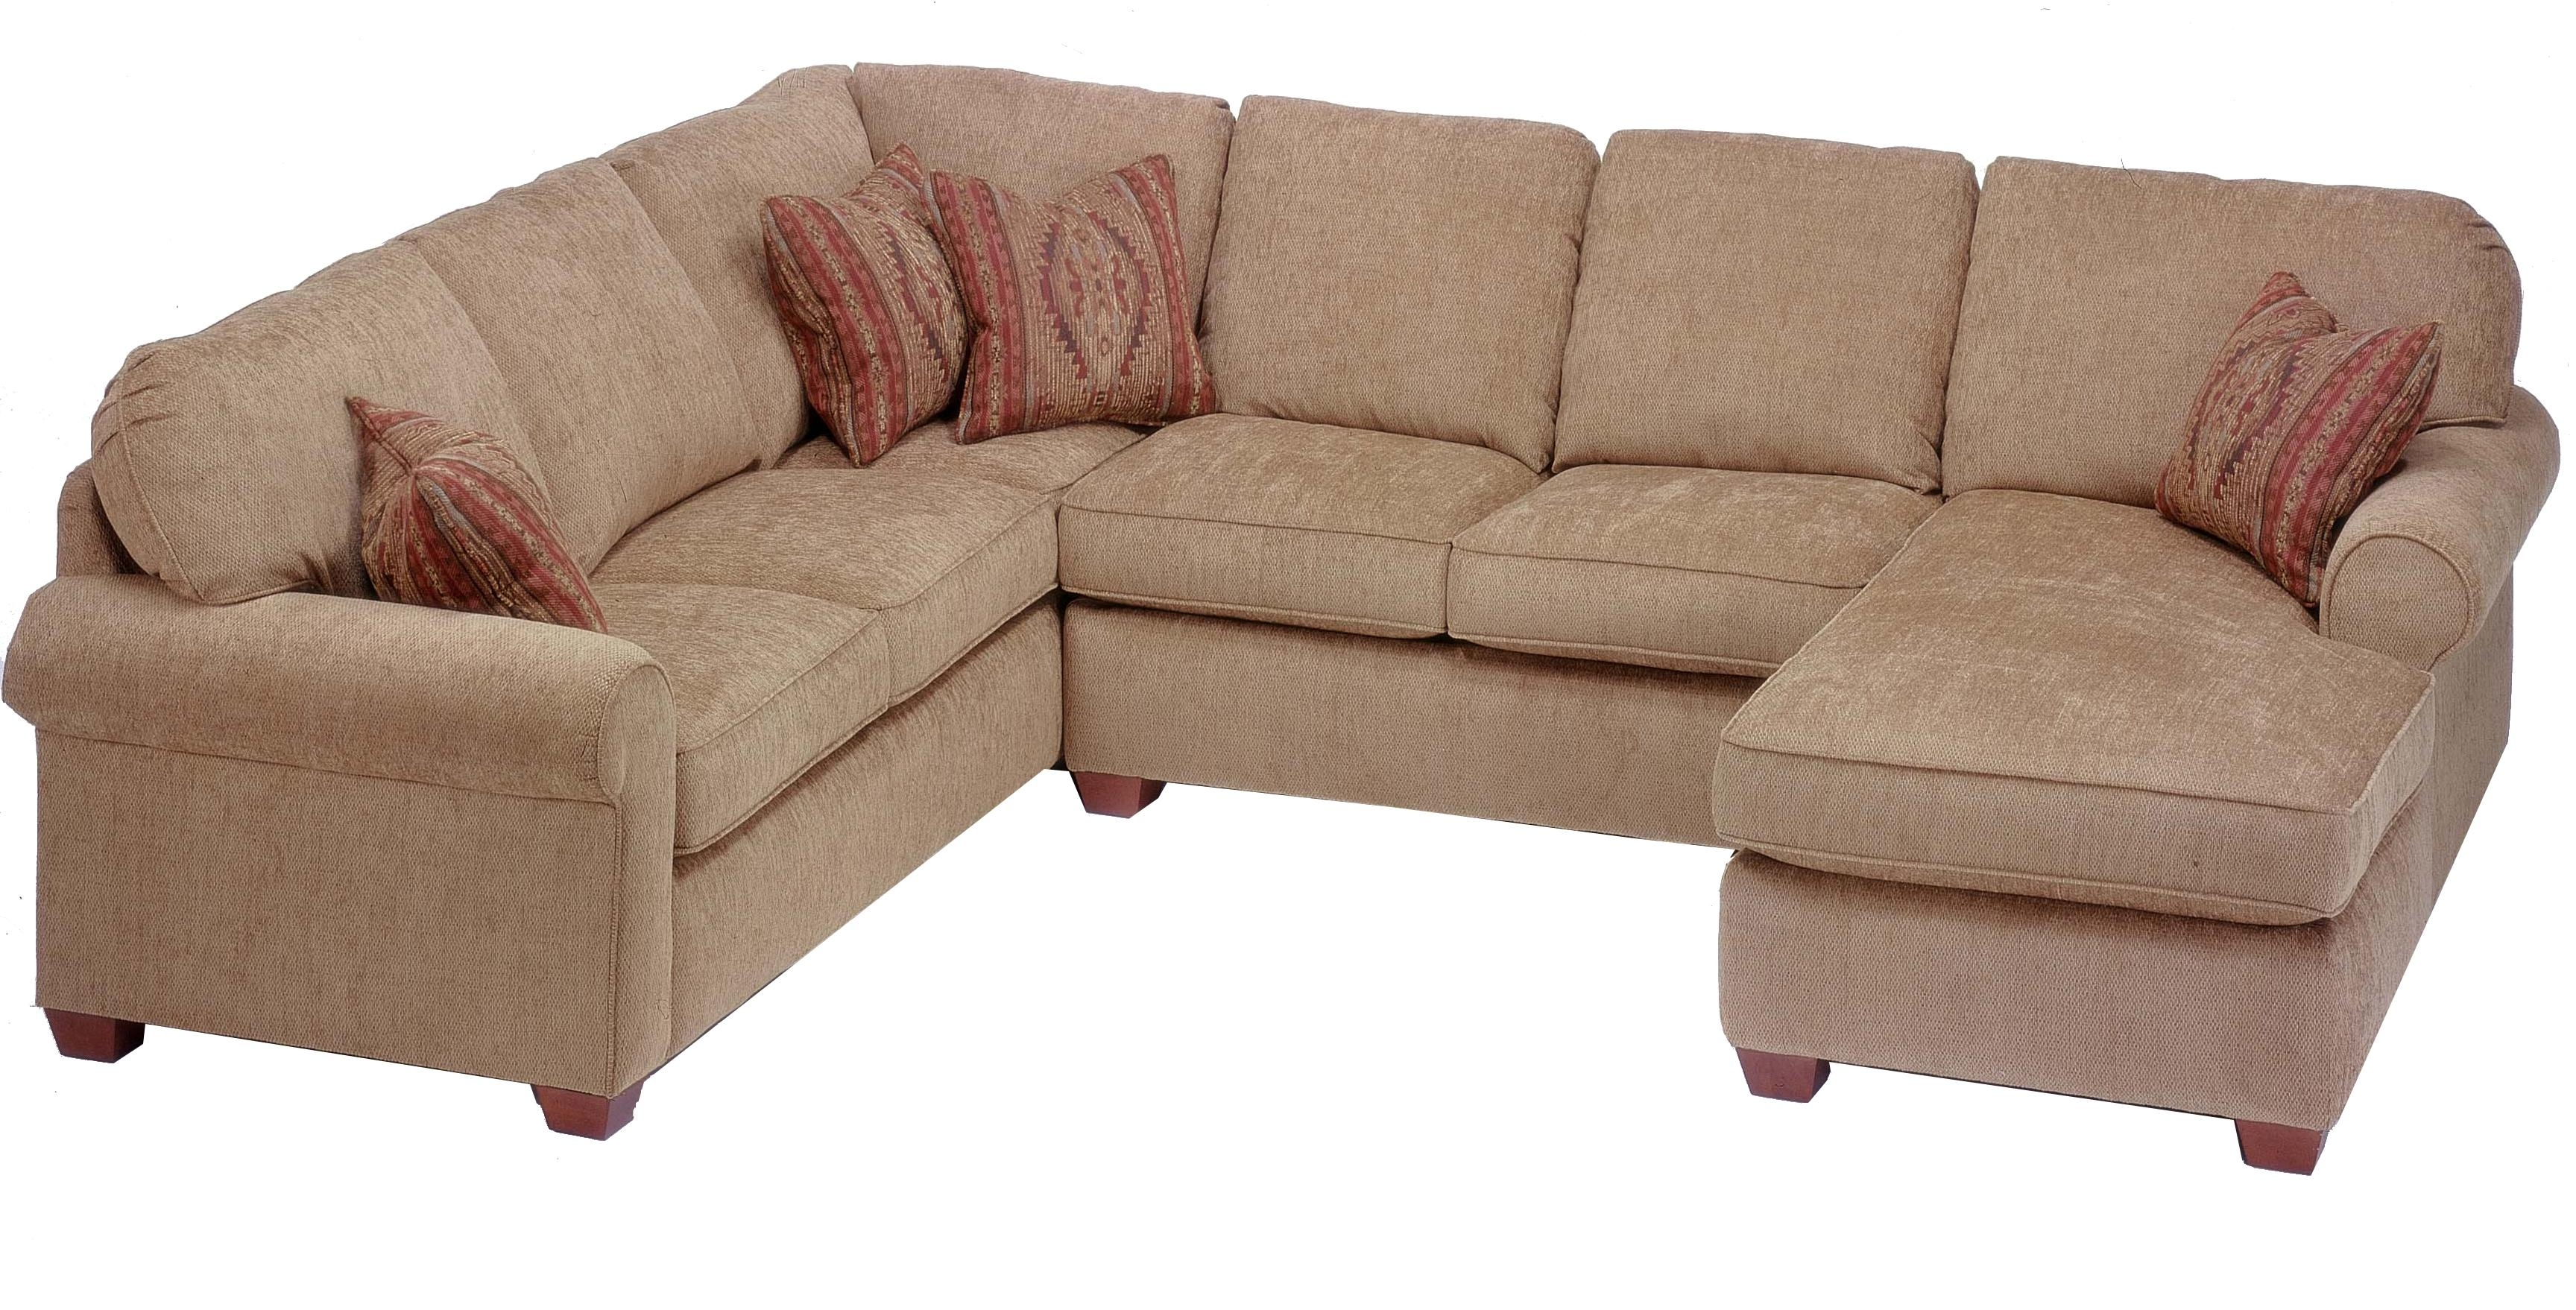 Flexsteel Thornton 3 Piece Sectional With Chaise – Ahfa – Sofa Throughout Newest Johnson City Tn Sectional Sofas (View 7 of 20)